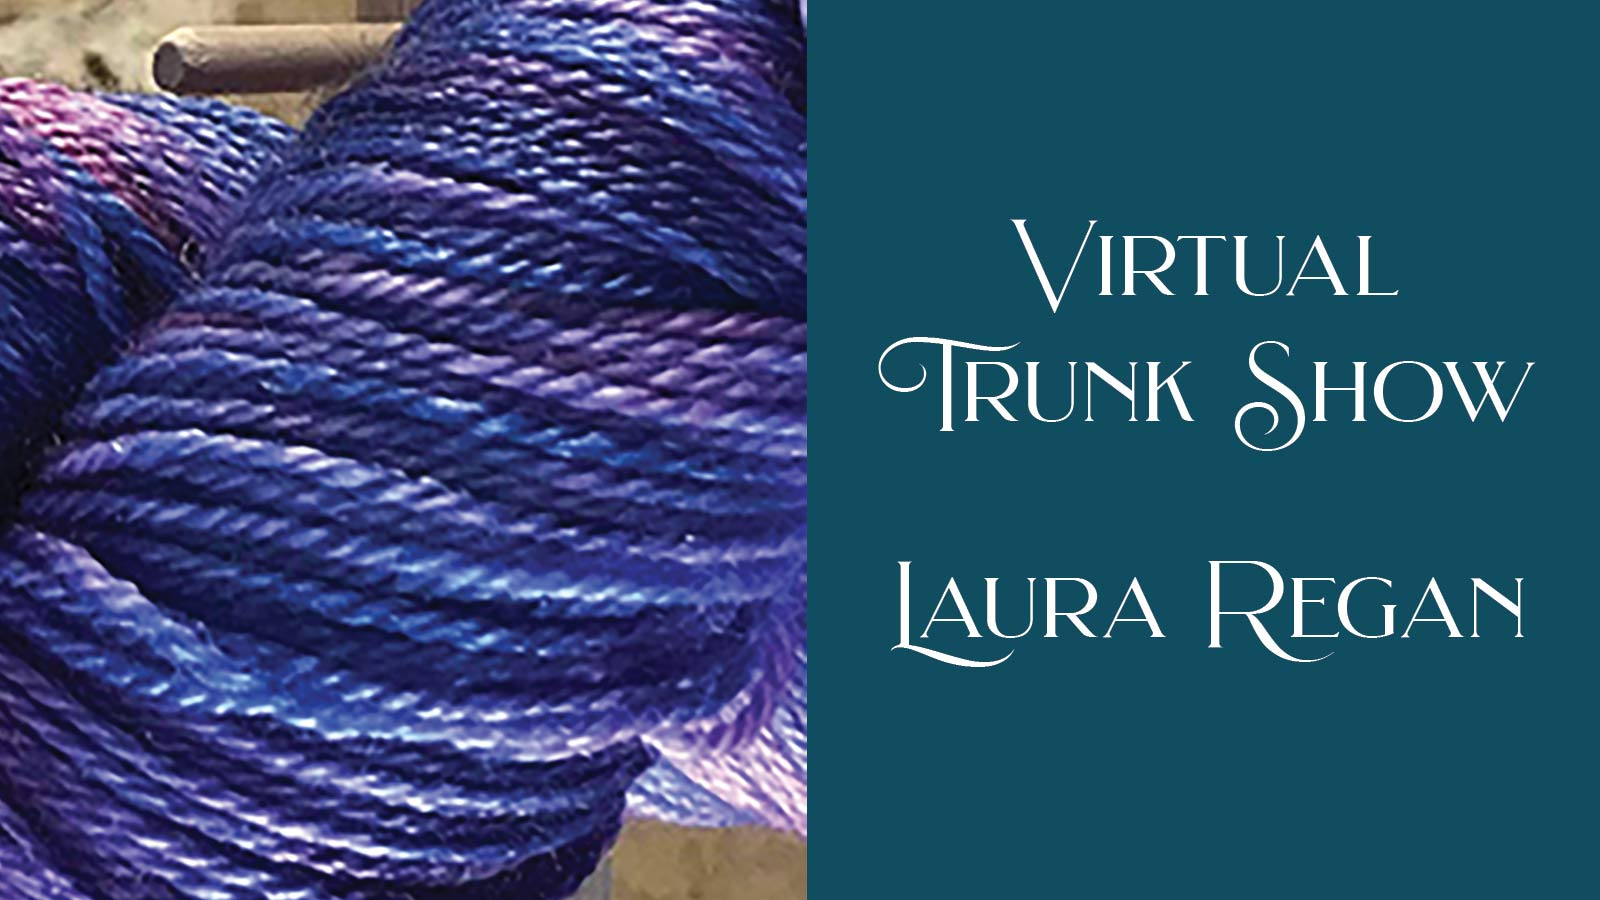 Virtual Trunk Show announcement graphics with purple yarn.